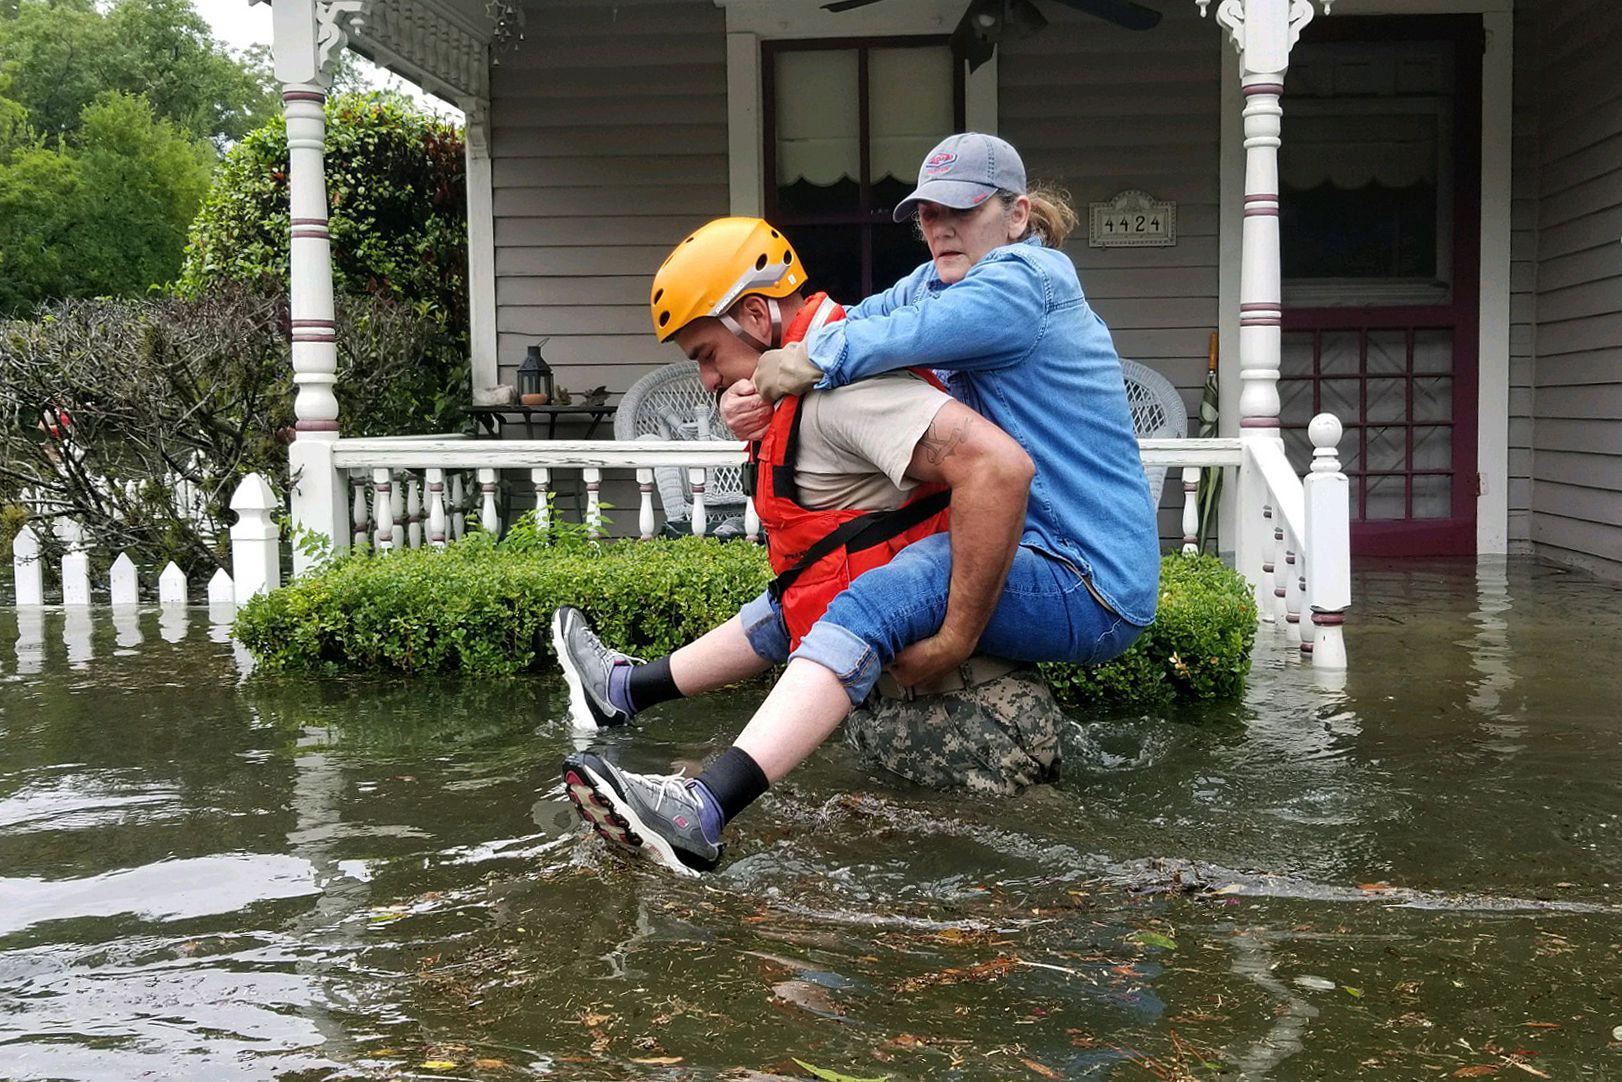 People giving birth in the Hurricane Harvey's wake had an increased risk of medical complications, as did their newborns.